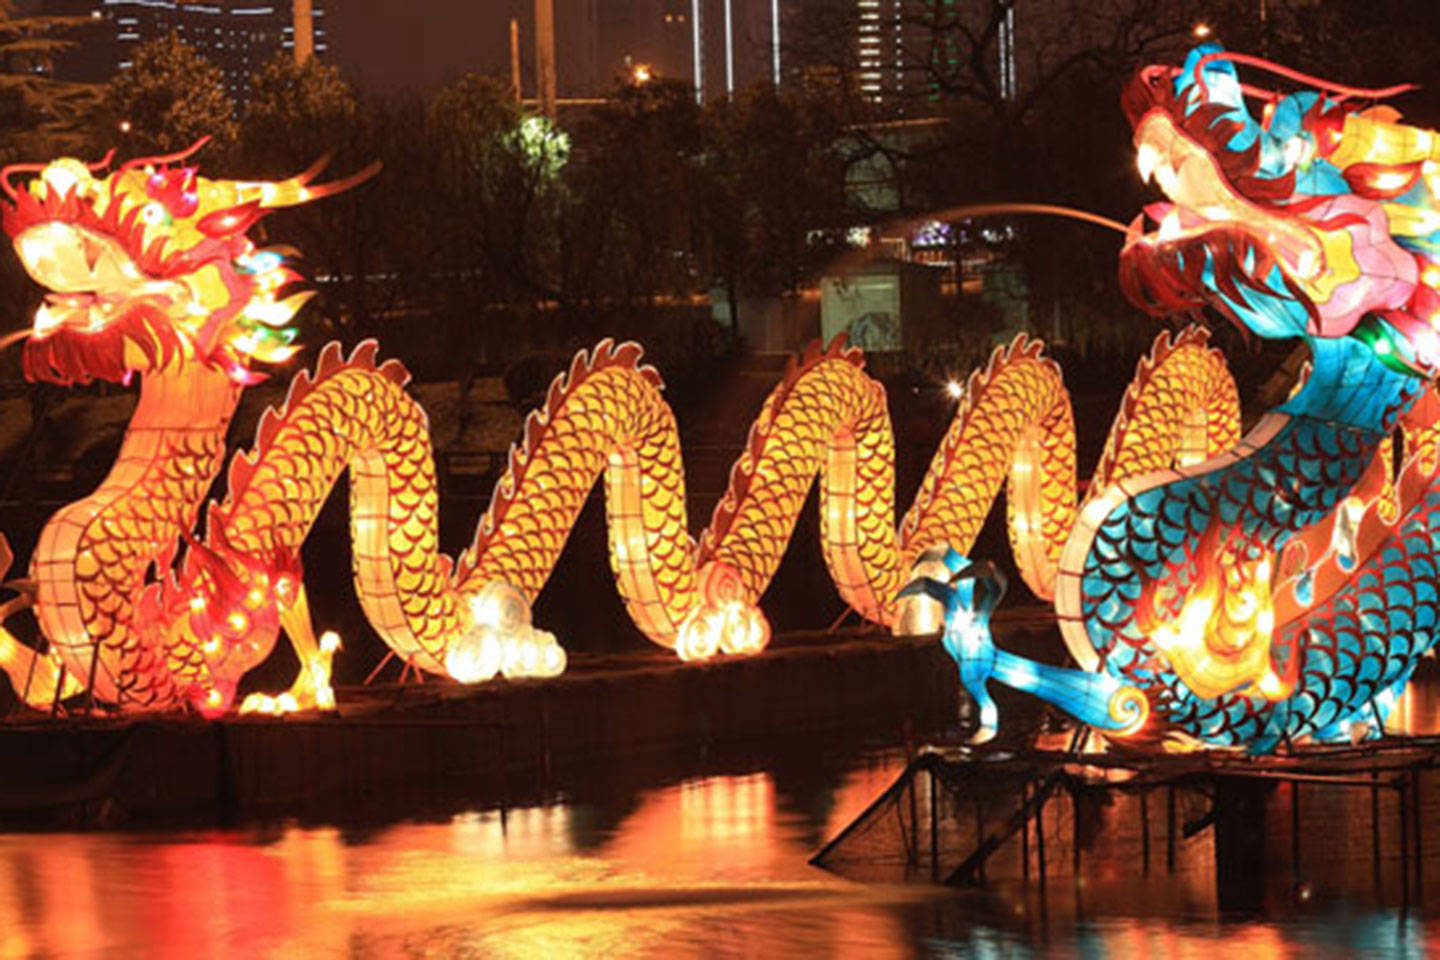 Colourful dragon sculptures lit up at night